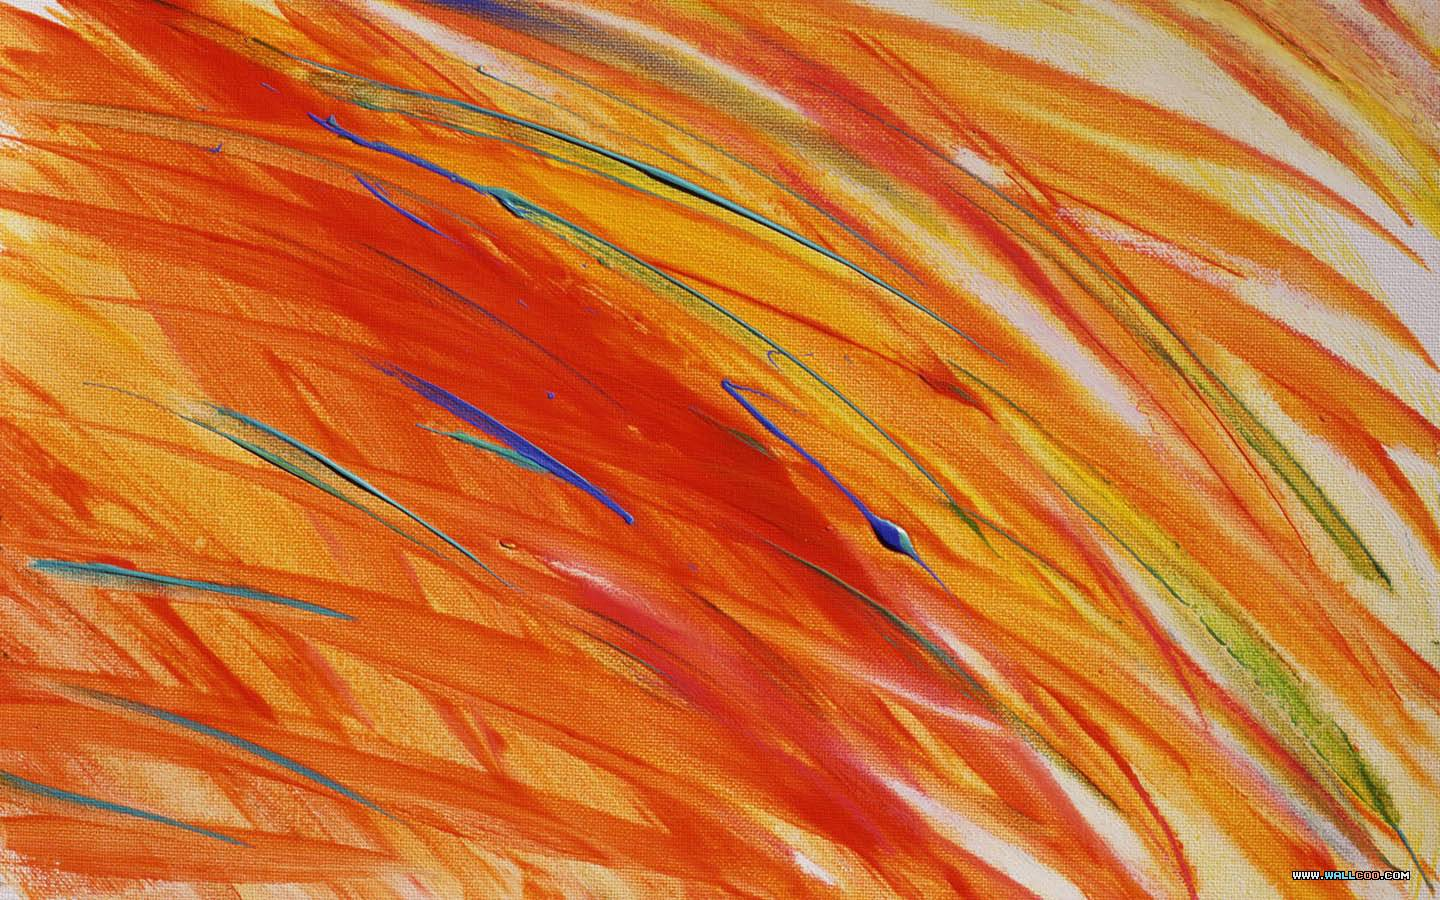 Painted Canvas Texture With Brush Strokes 1440*900 - Painting - HD Wallpaper